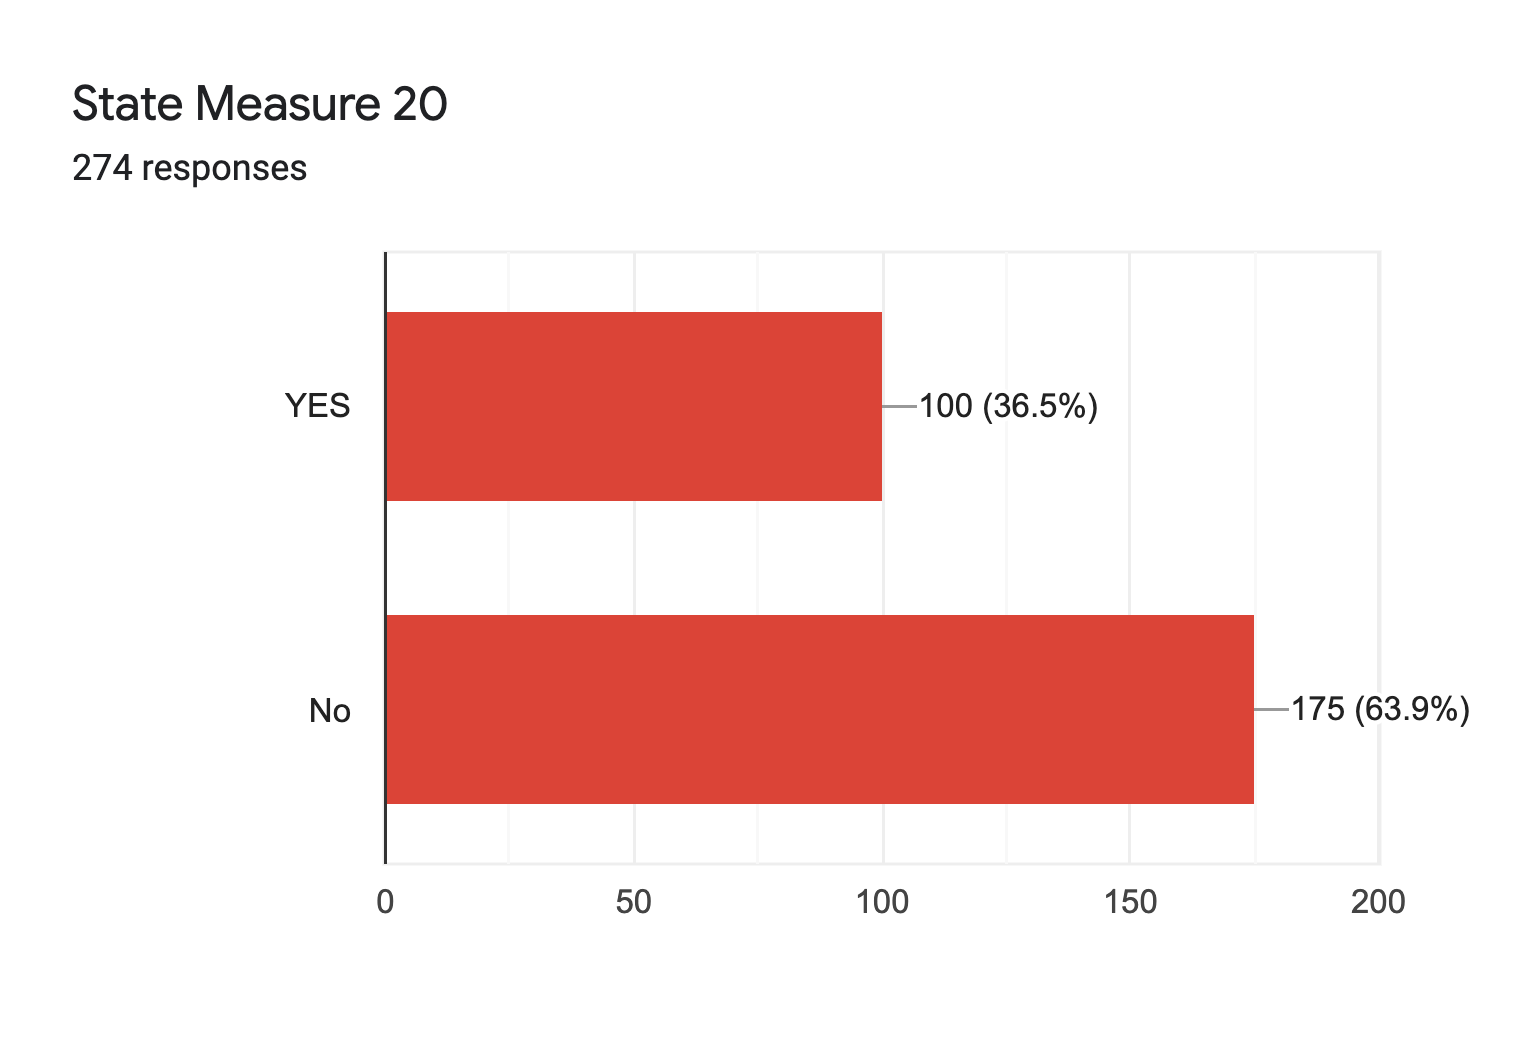 Forms response chart. Question title: State Measure 20. Number of responses: 274 responses.